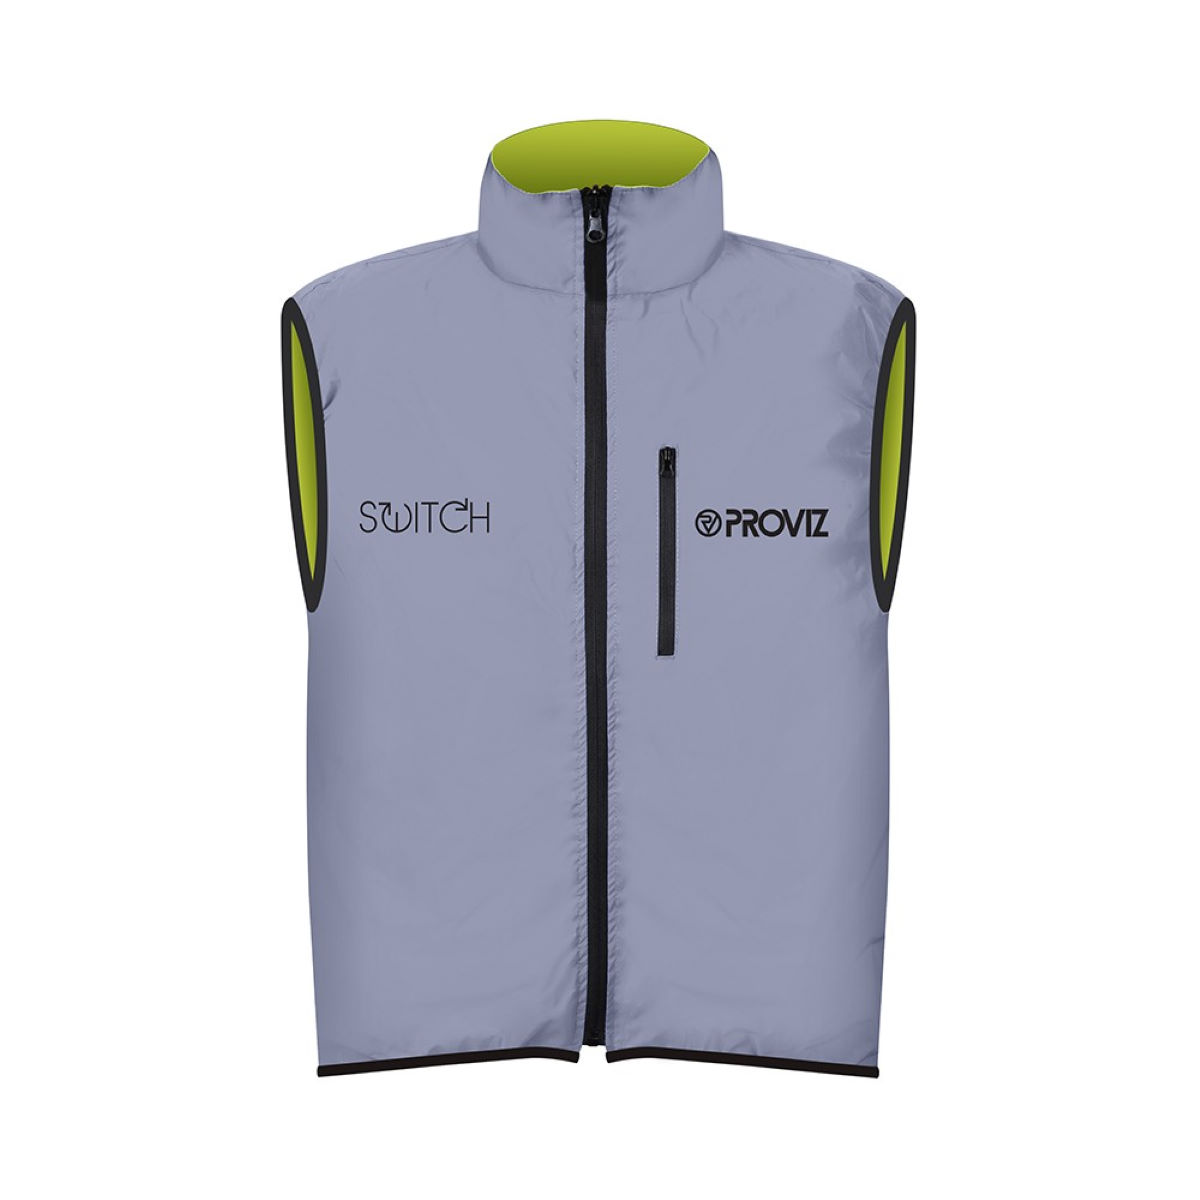 Gilet Proviz Switch (sans manches) - X Large Reflective/Yellow